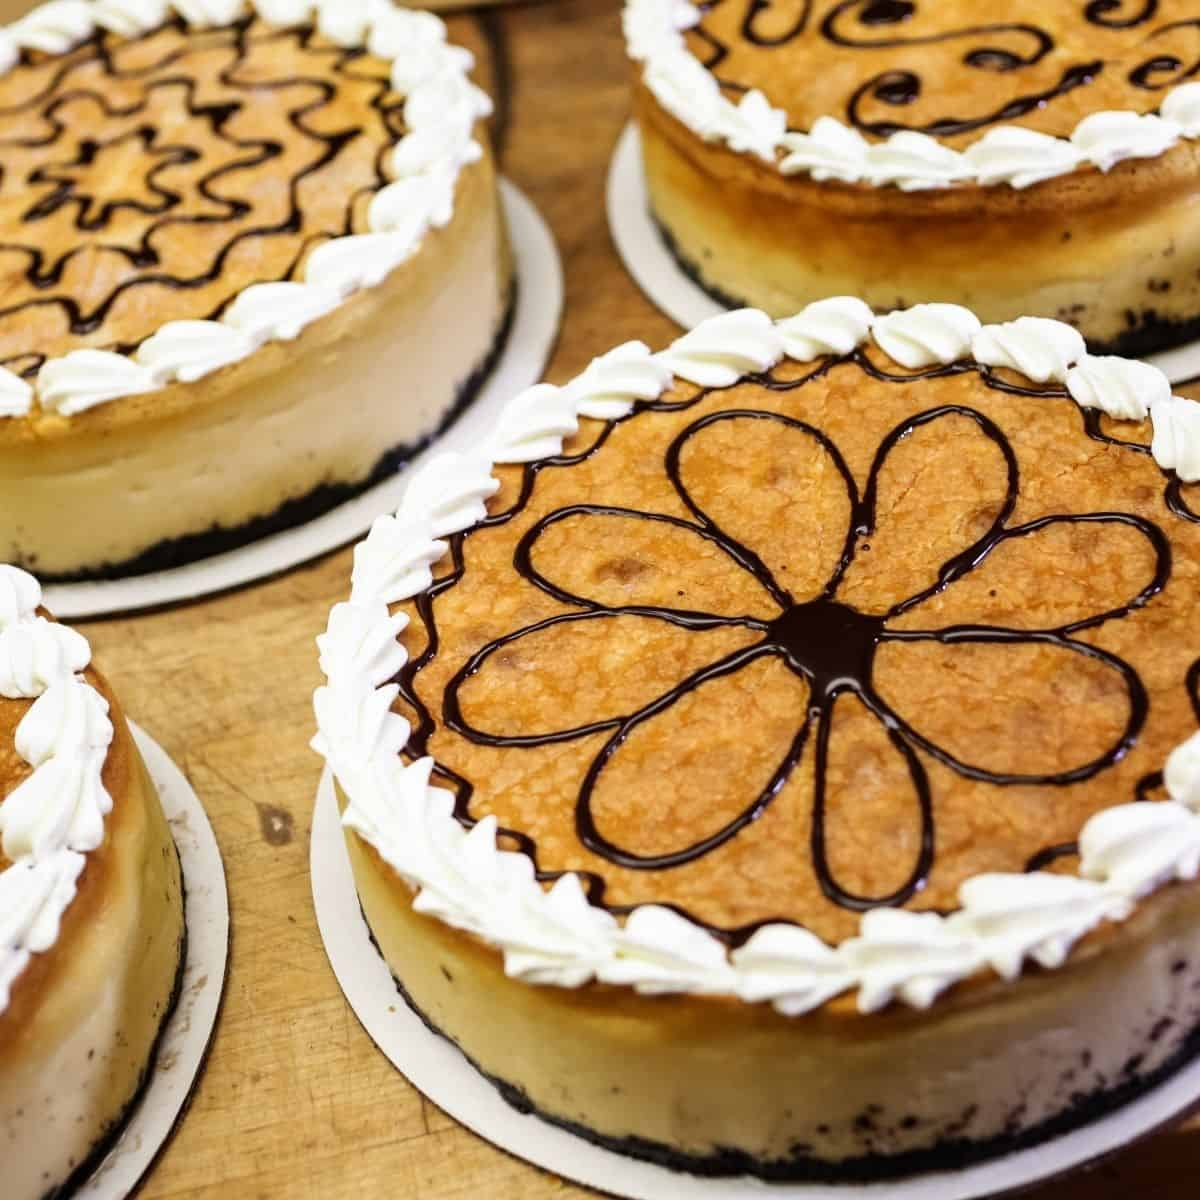 cheesecake decoration ideas cheesecake with swirl of chocolate syrup in shape of a flower with whipped cream around edges